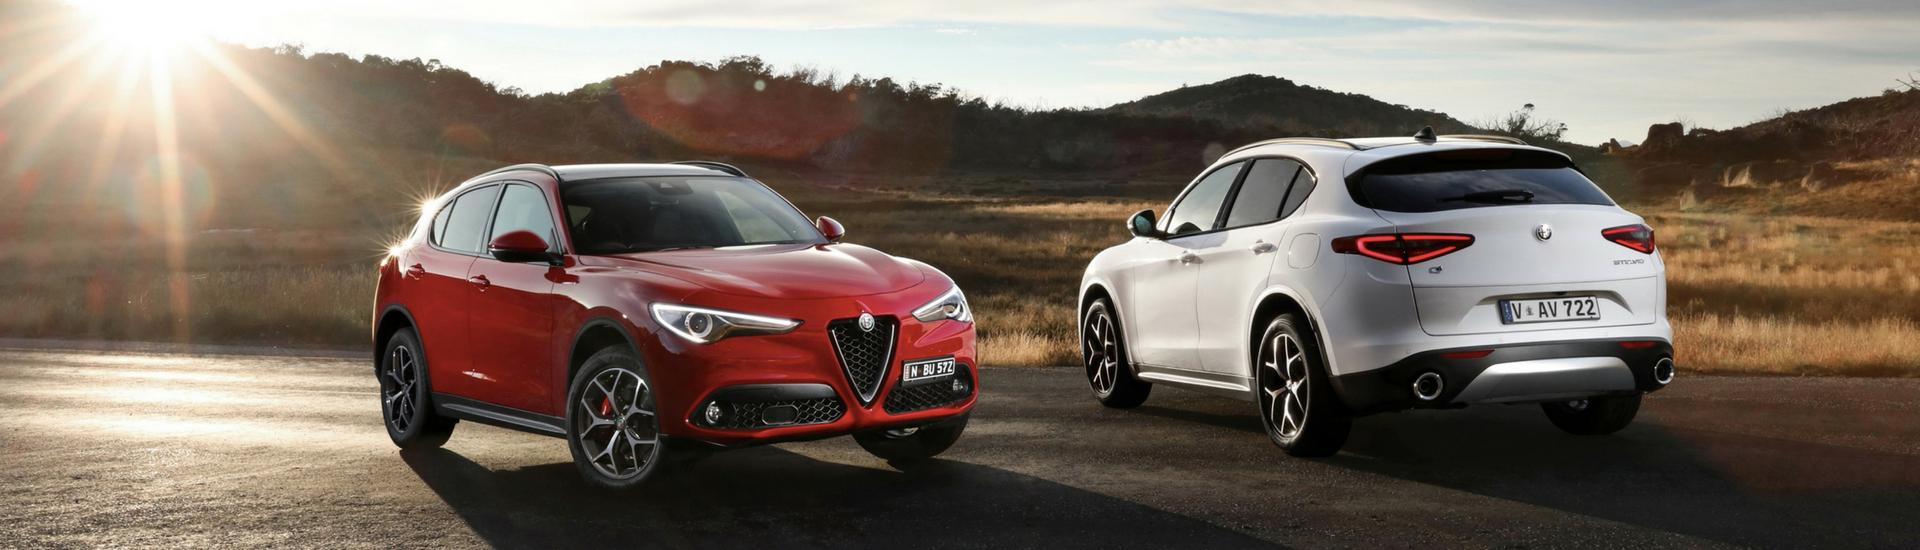 New Alfa Romeo Stelvio SUV Cars For Sale Carsalescomau - Alfa romeo for sale